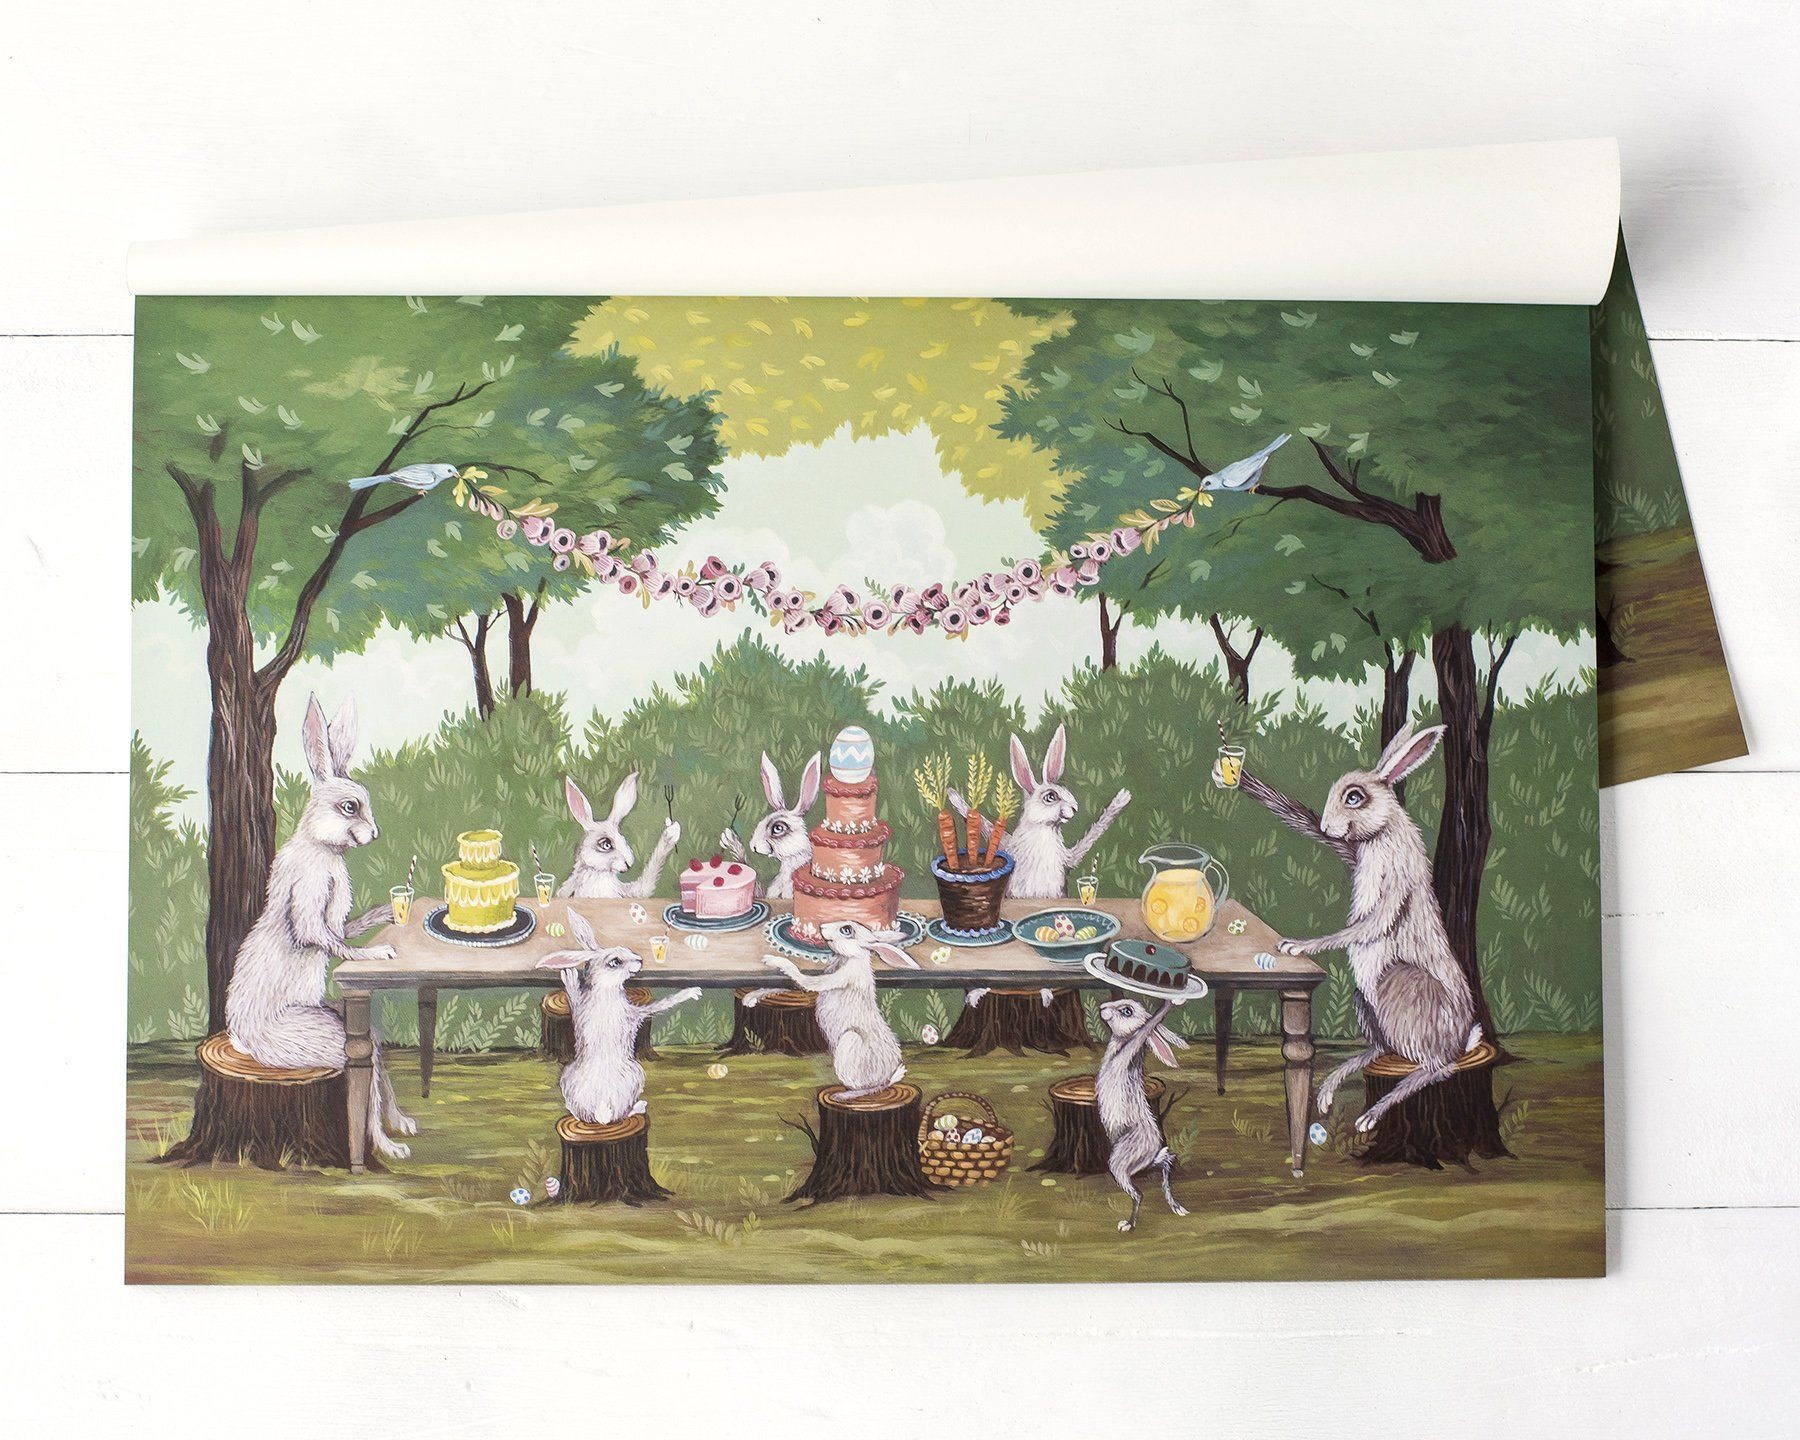 spring social placemat products table accent scene hand painted the artist elizabeth foster collaboration with hester cook this paper placemats are perfect metal floor reducer